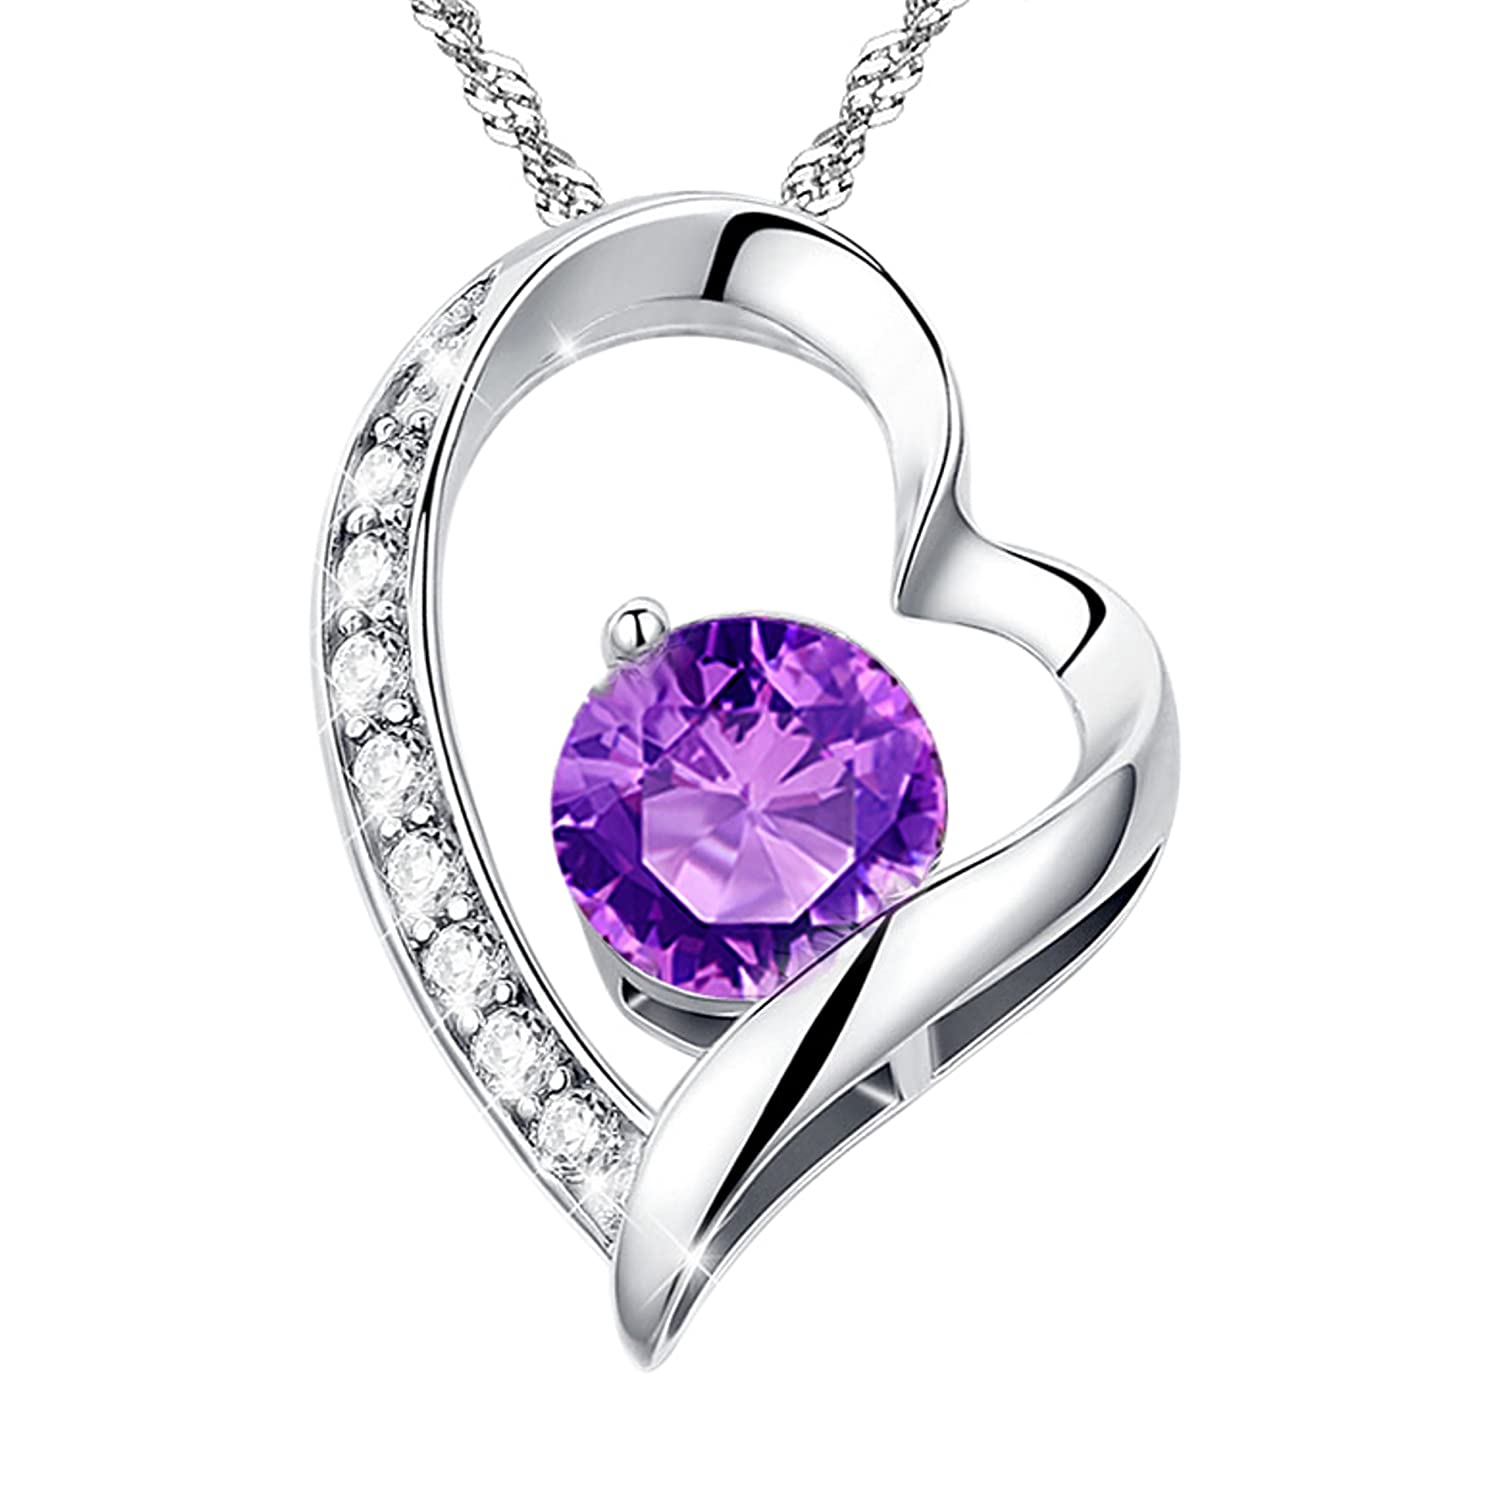 htm sterling with necklace end i diamond purple pm silver in s sale pendant topfive